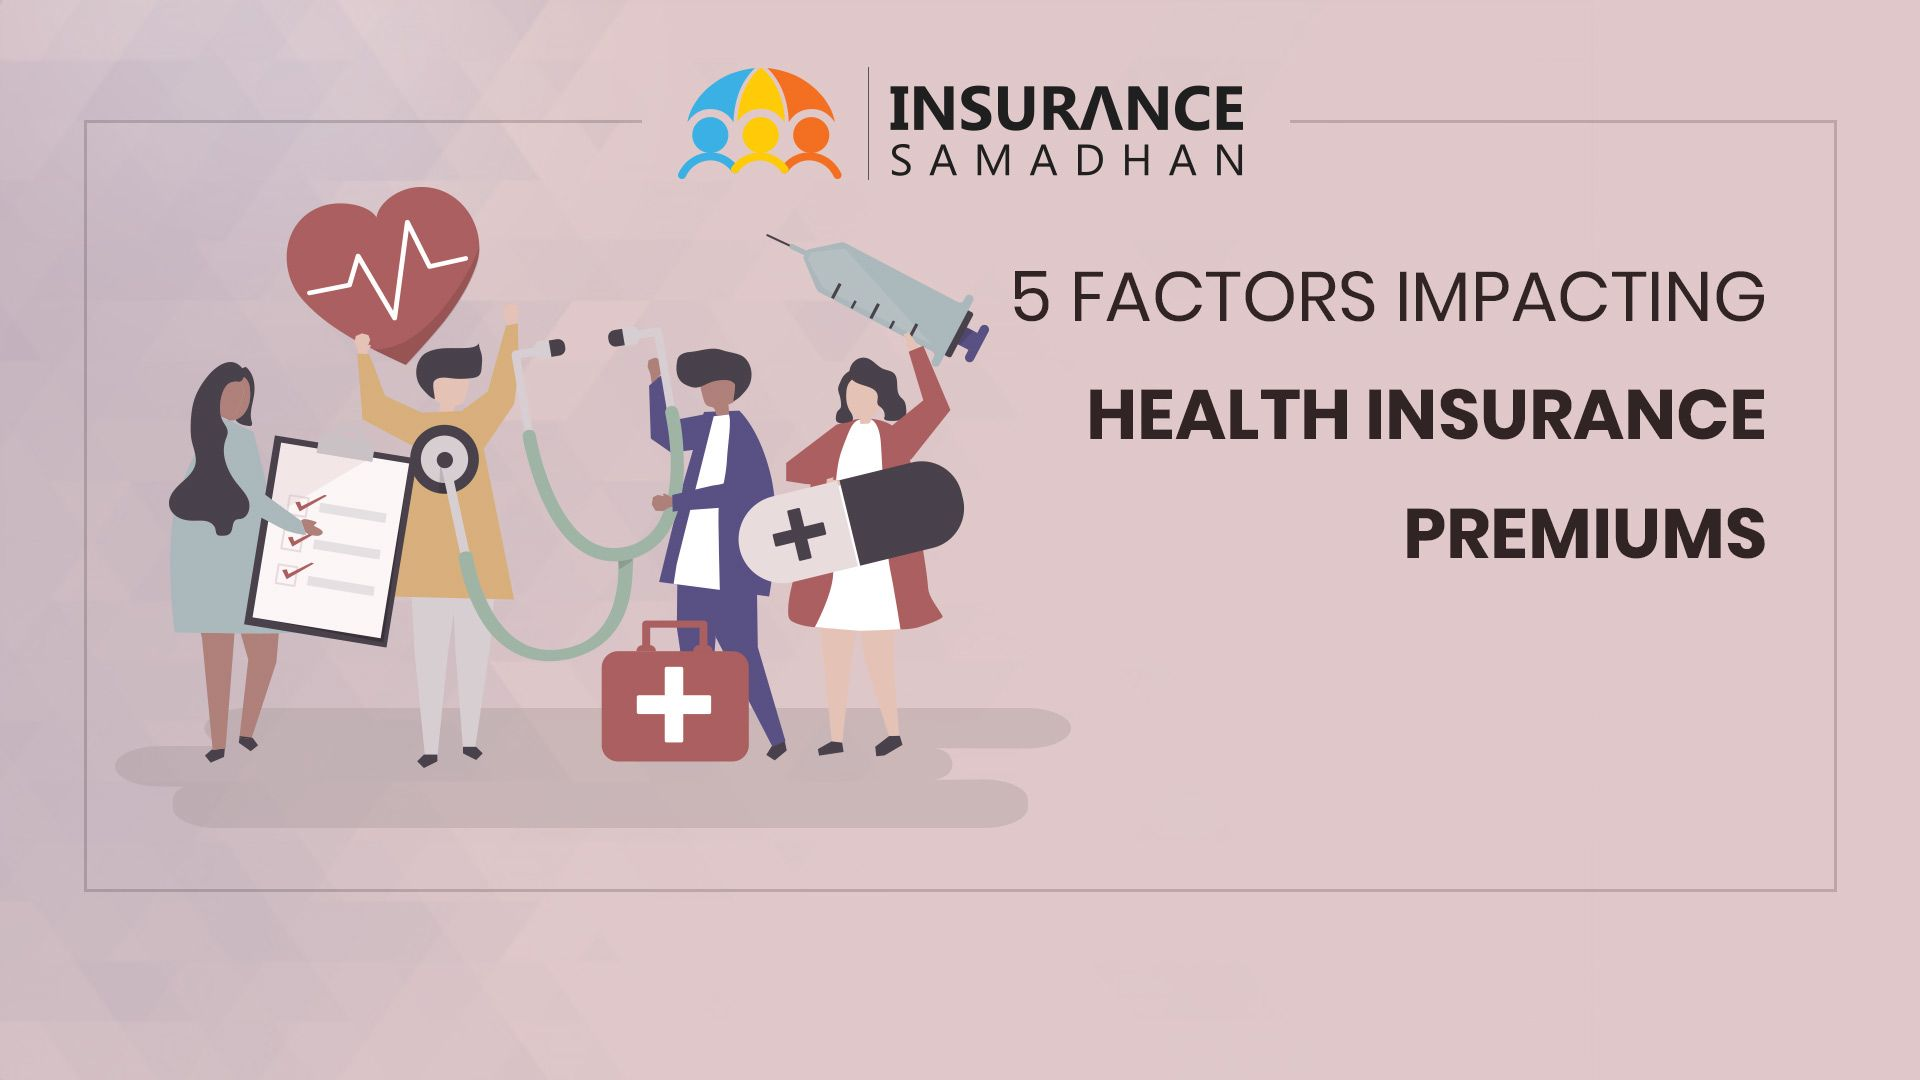 6 Factors that could impact your health insurance premiums costs